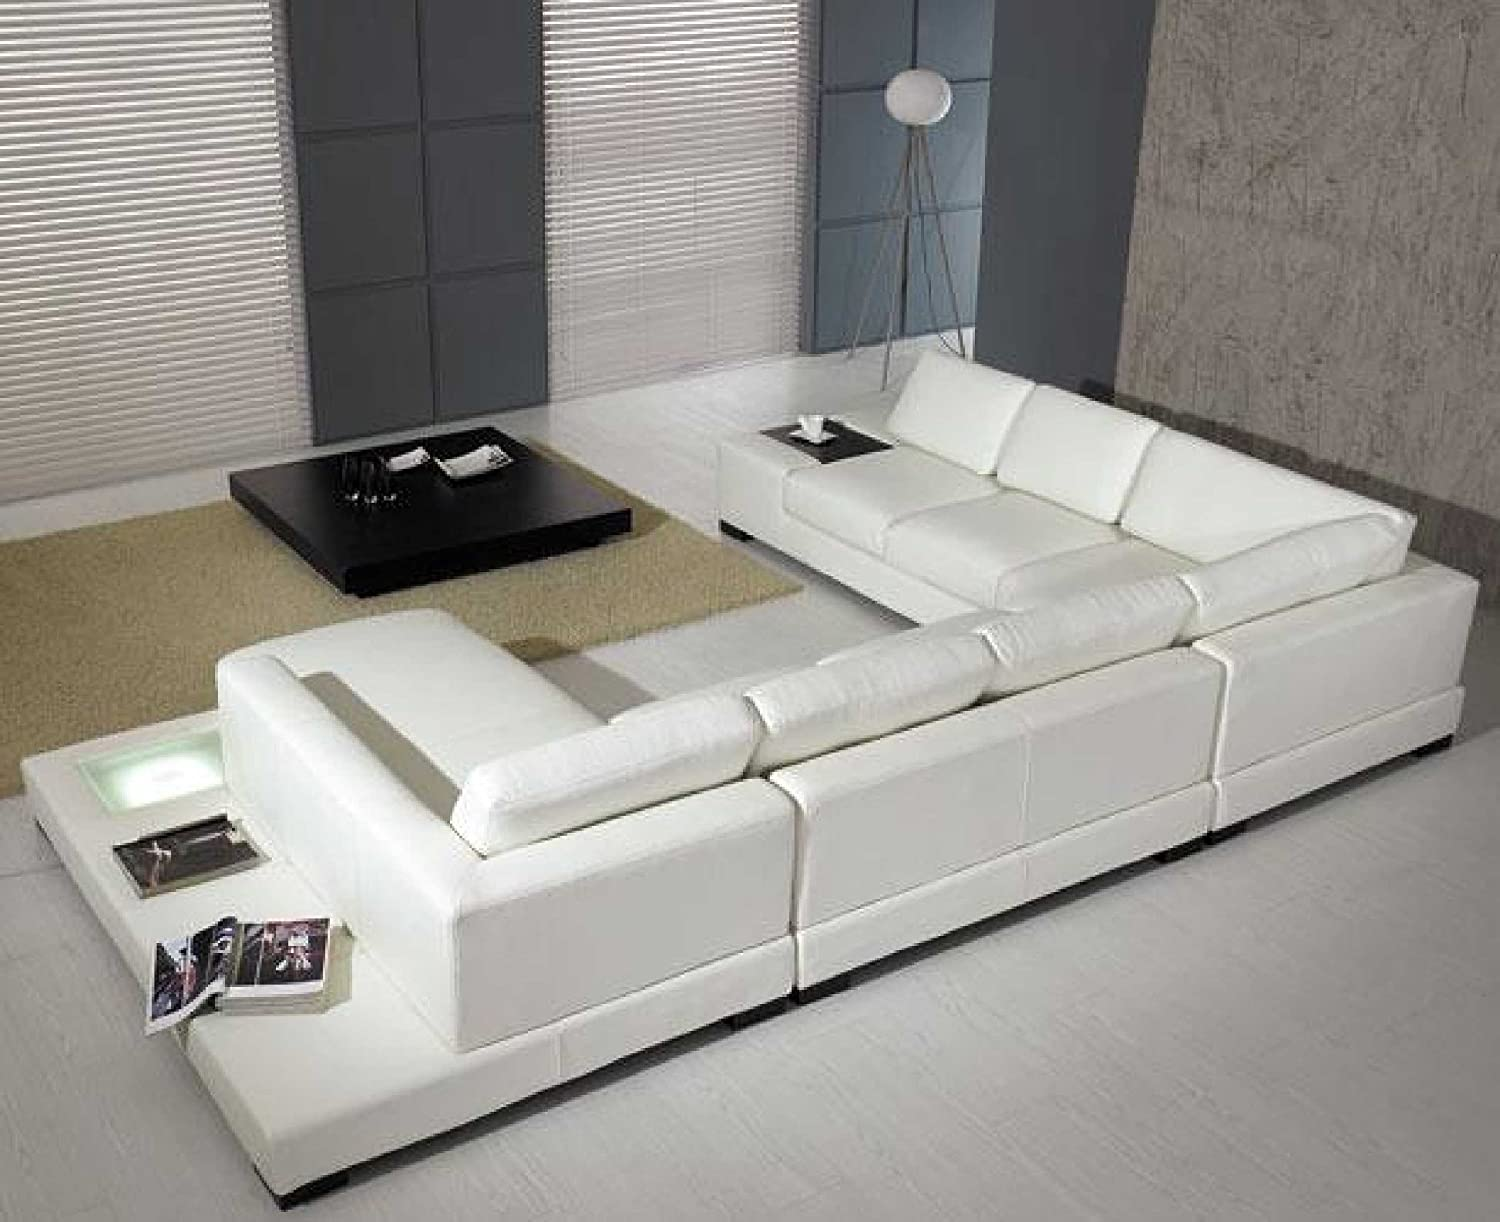 Amazoncom T35 White Bonded Leather Sectional Sofa Set with